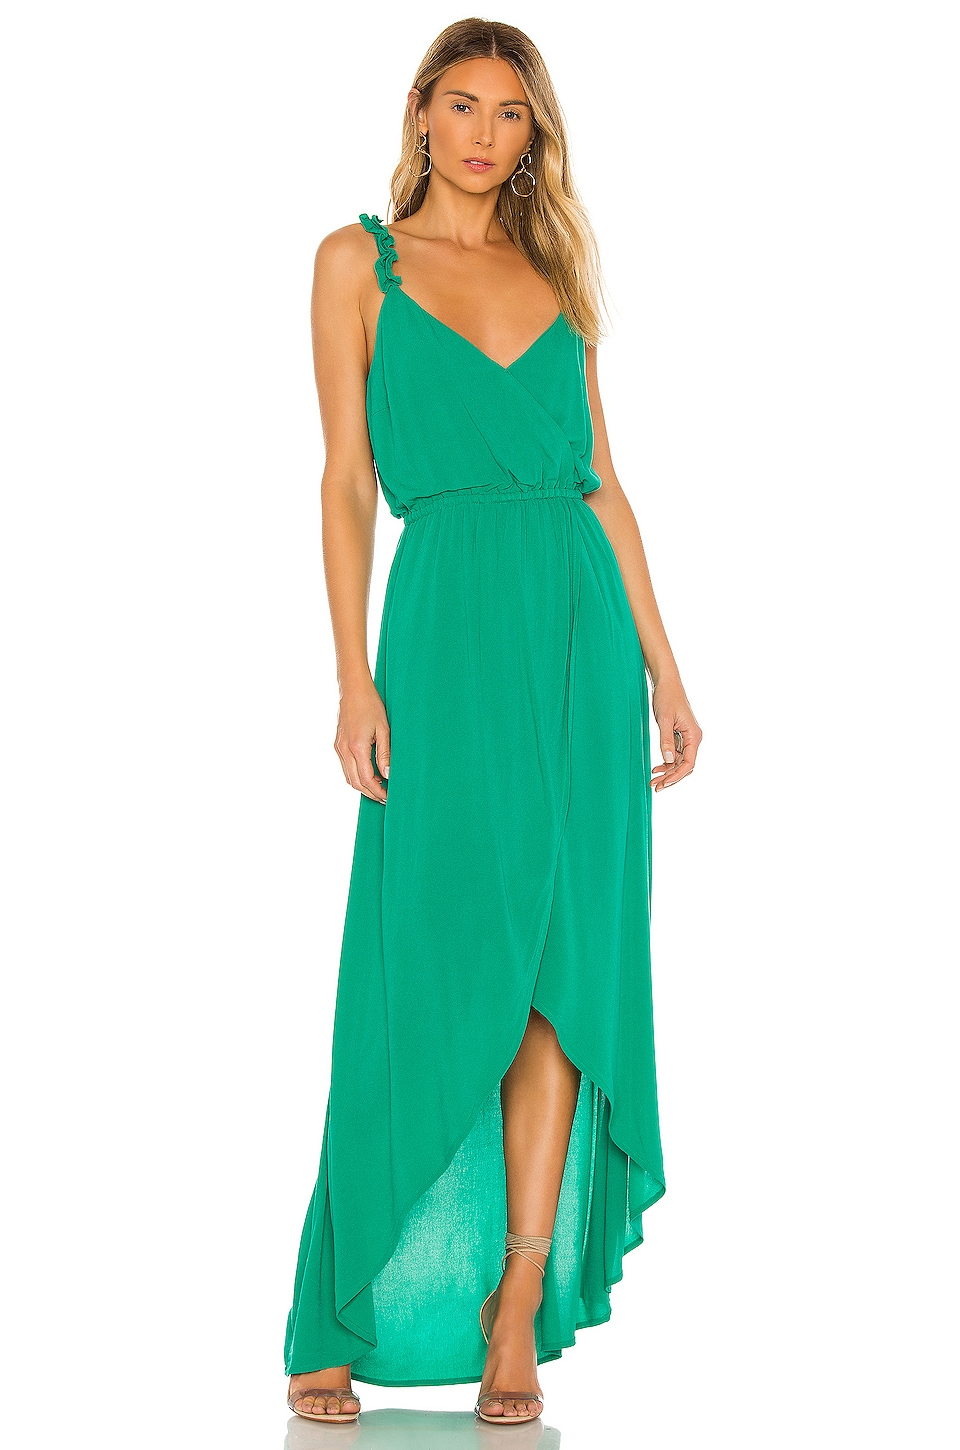 JACK by BB Dakota Ruffle & Cut Midi Dress             BB Dakota                                                                                                       CA$ 120.25 14